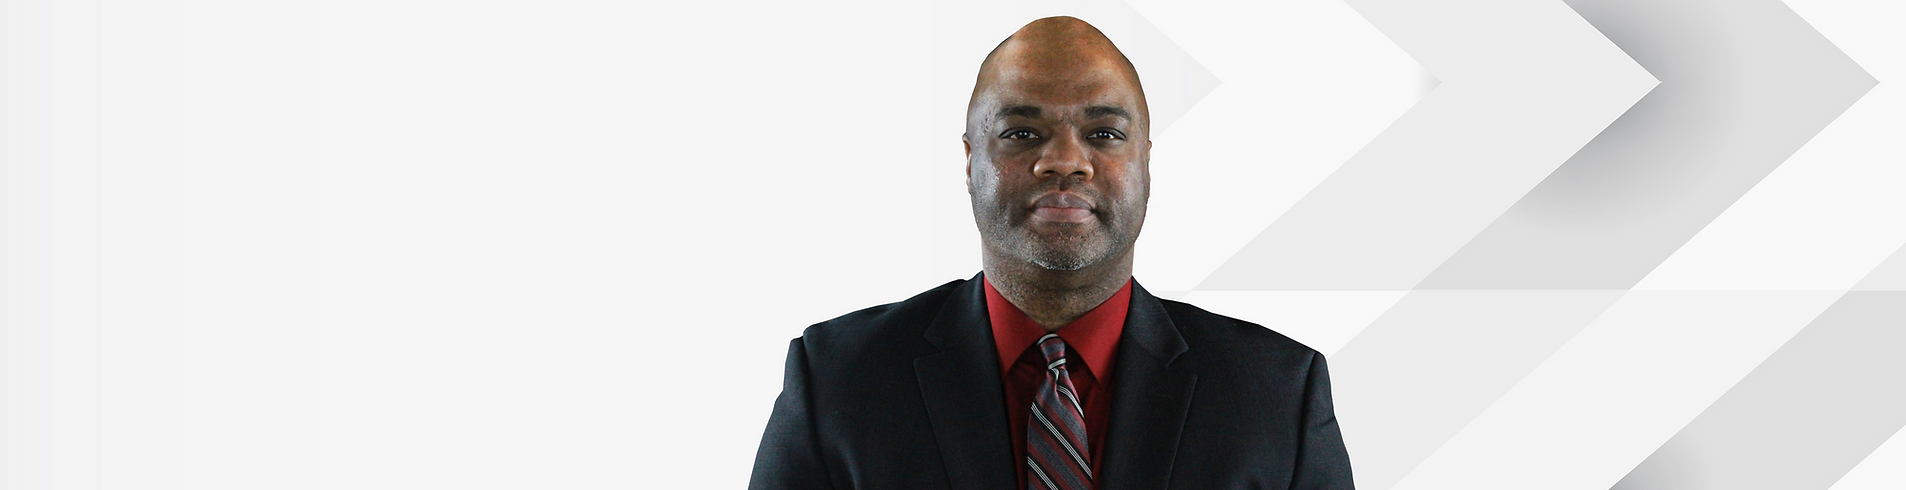 Langston McFadden, Litigation Attorney at the Law Offices of Pullano & Farrow